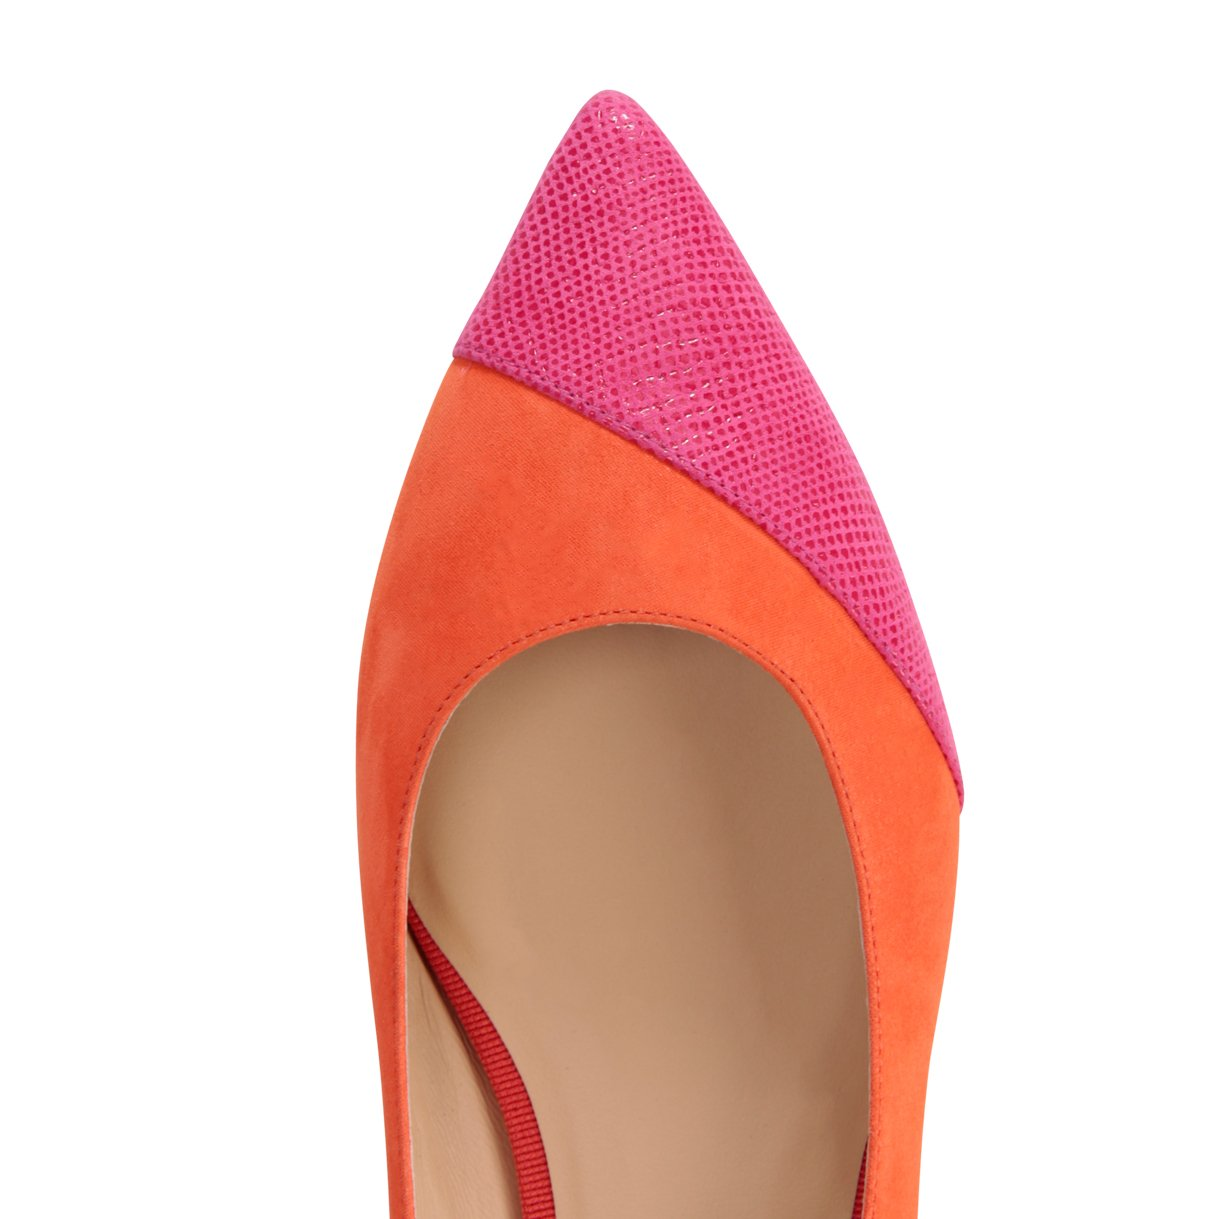 COMO - Hydra Mandarin + Asymmetrical Toe Karung Epiphany Pink, VIAJIYU - Women's Hand Made Sustainable Luxury Shoes. Made in Italy. Made to Order.